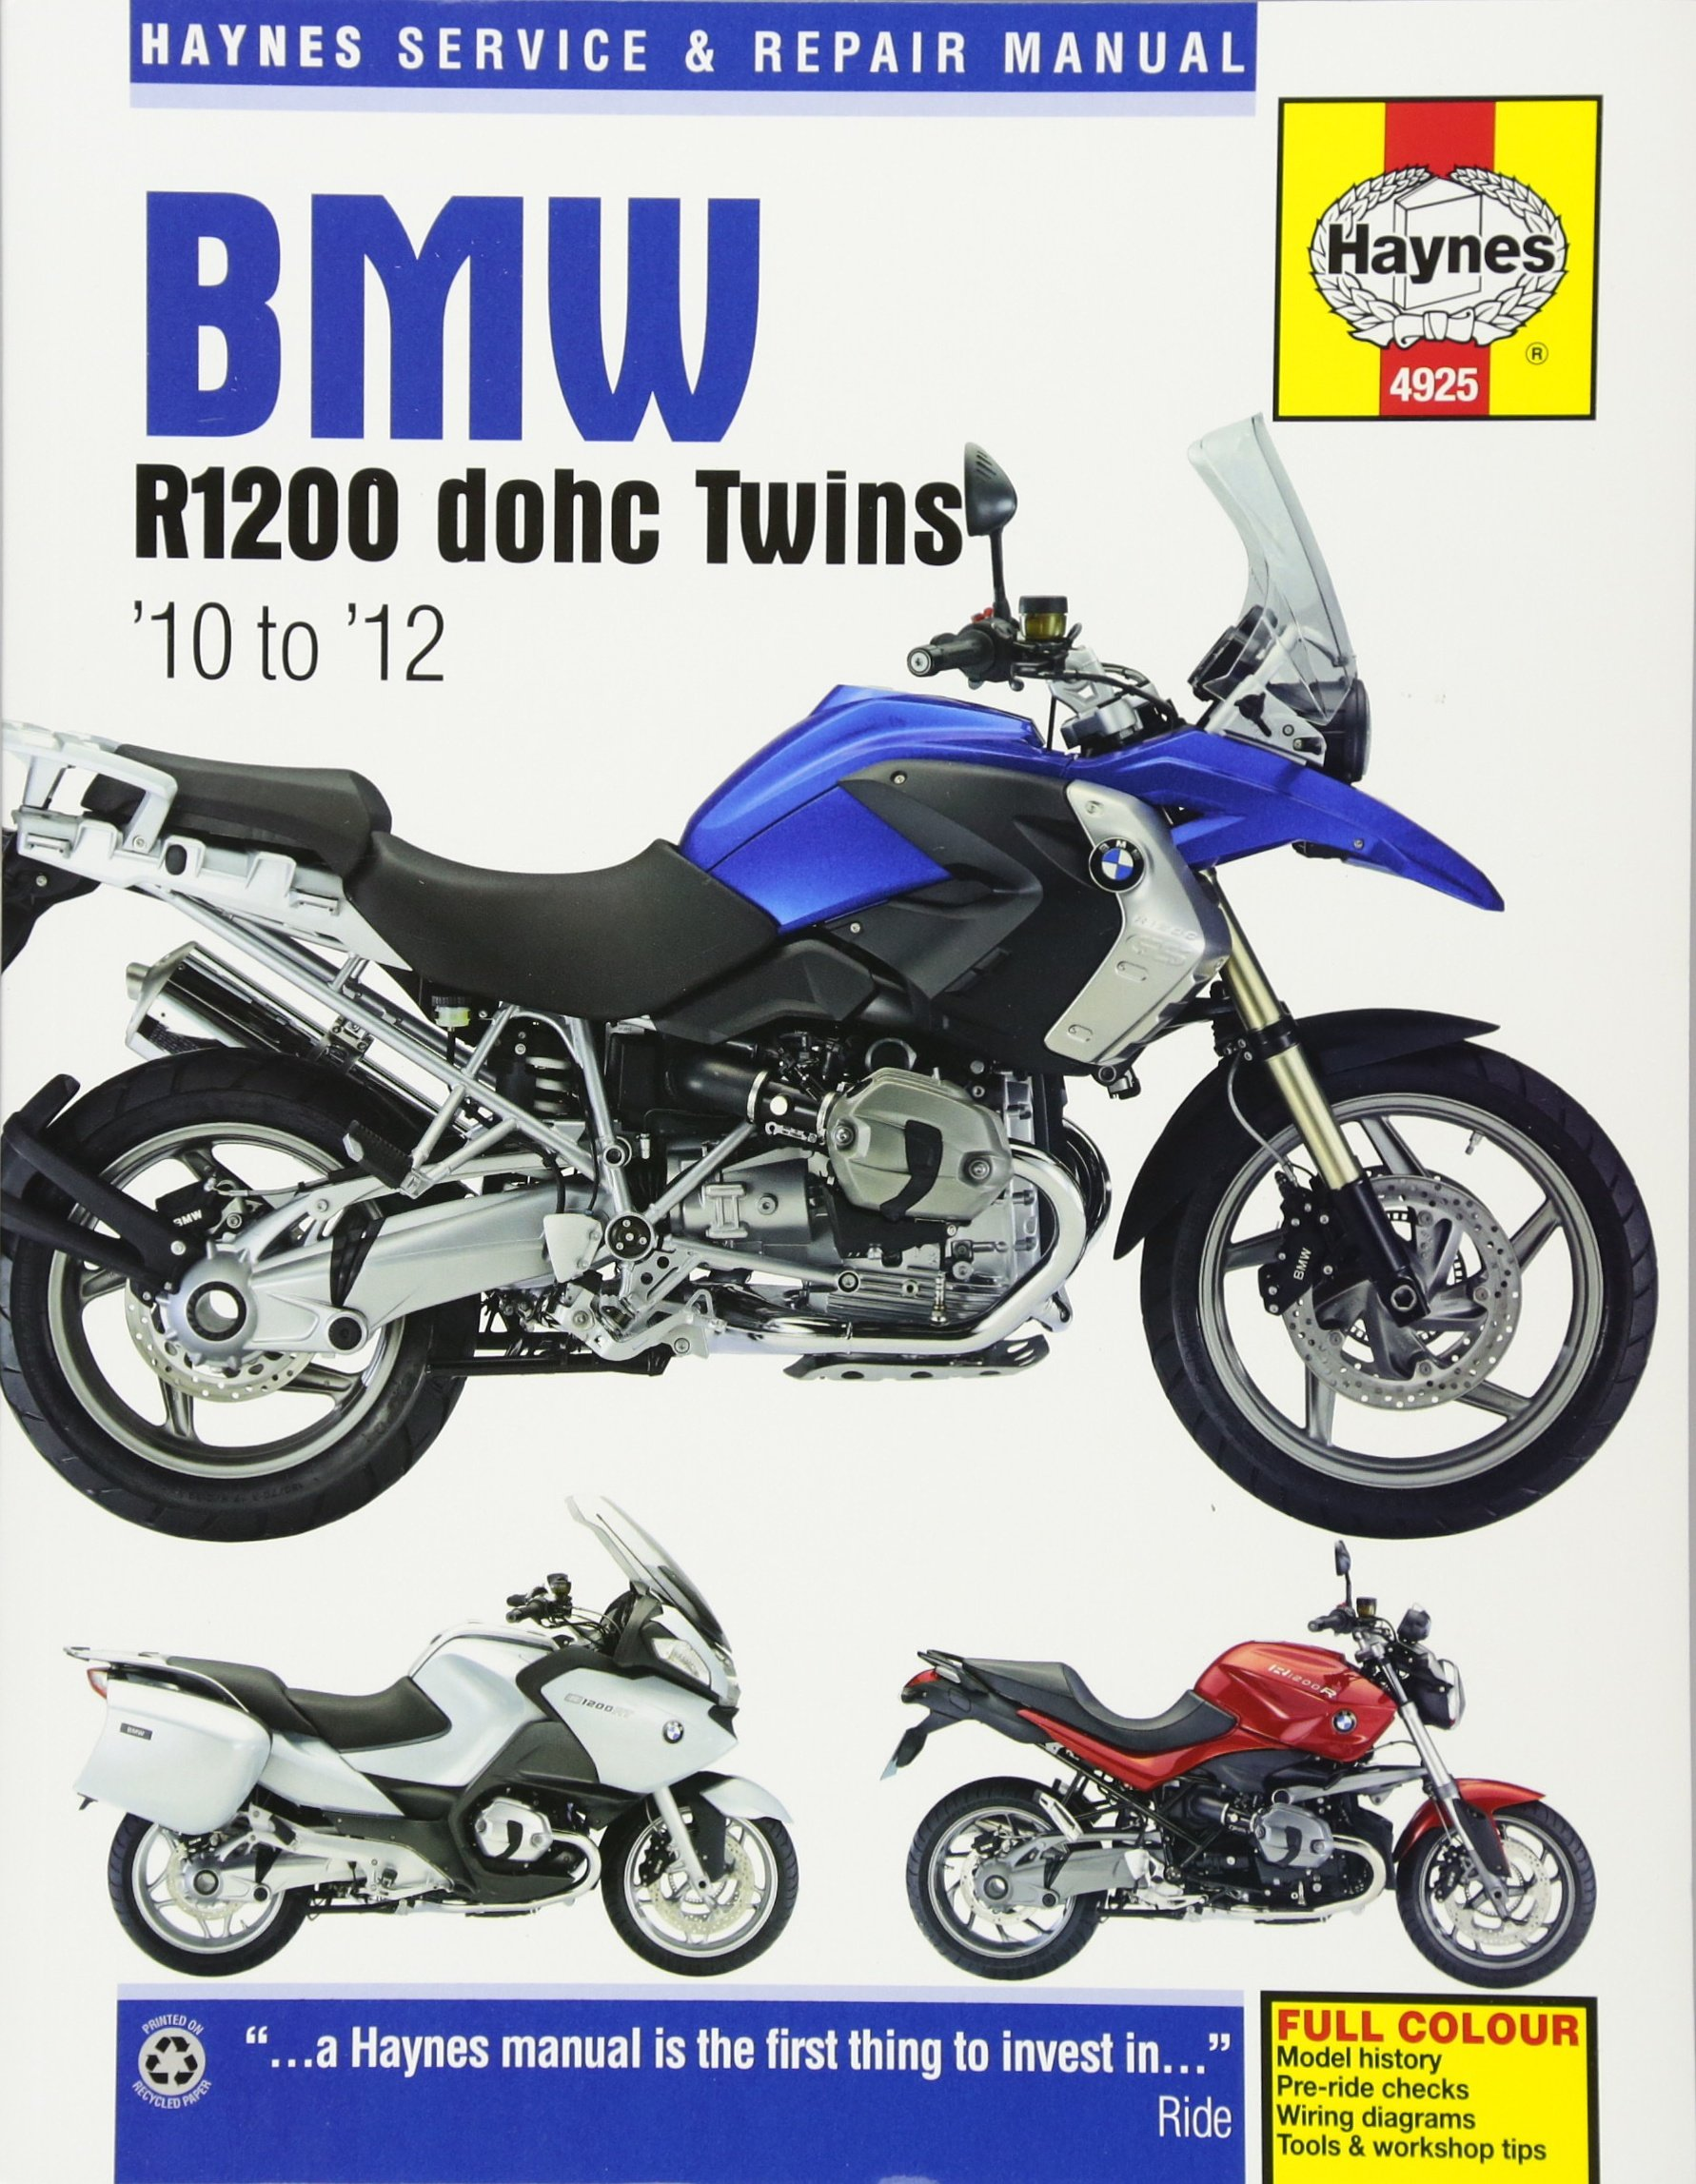 bmw r1200 dohc twins 10 to 12 haynes service repair manual rh amazon com bmw r1200gs lc wiring diagram bmw r 1200 wiring diagram